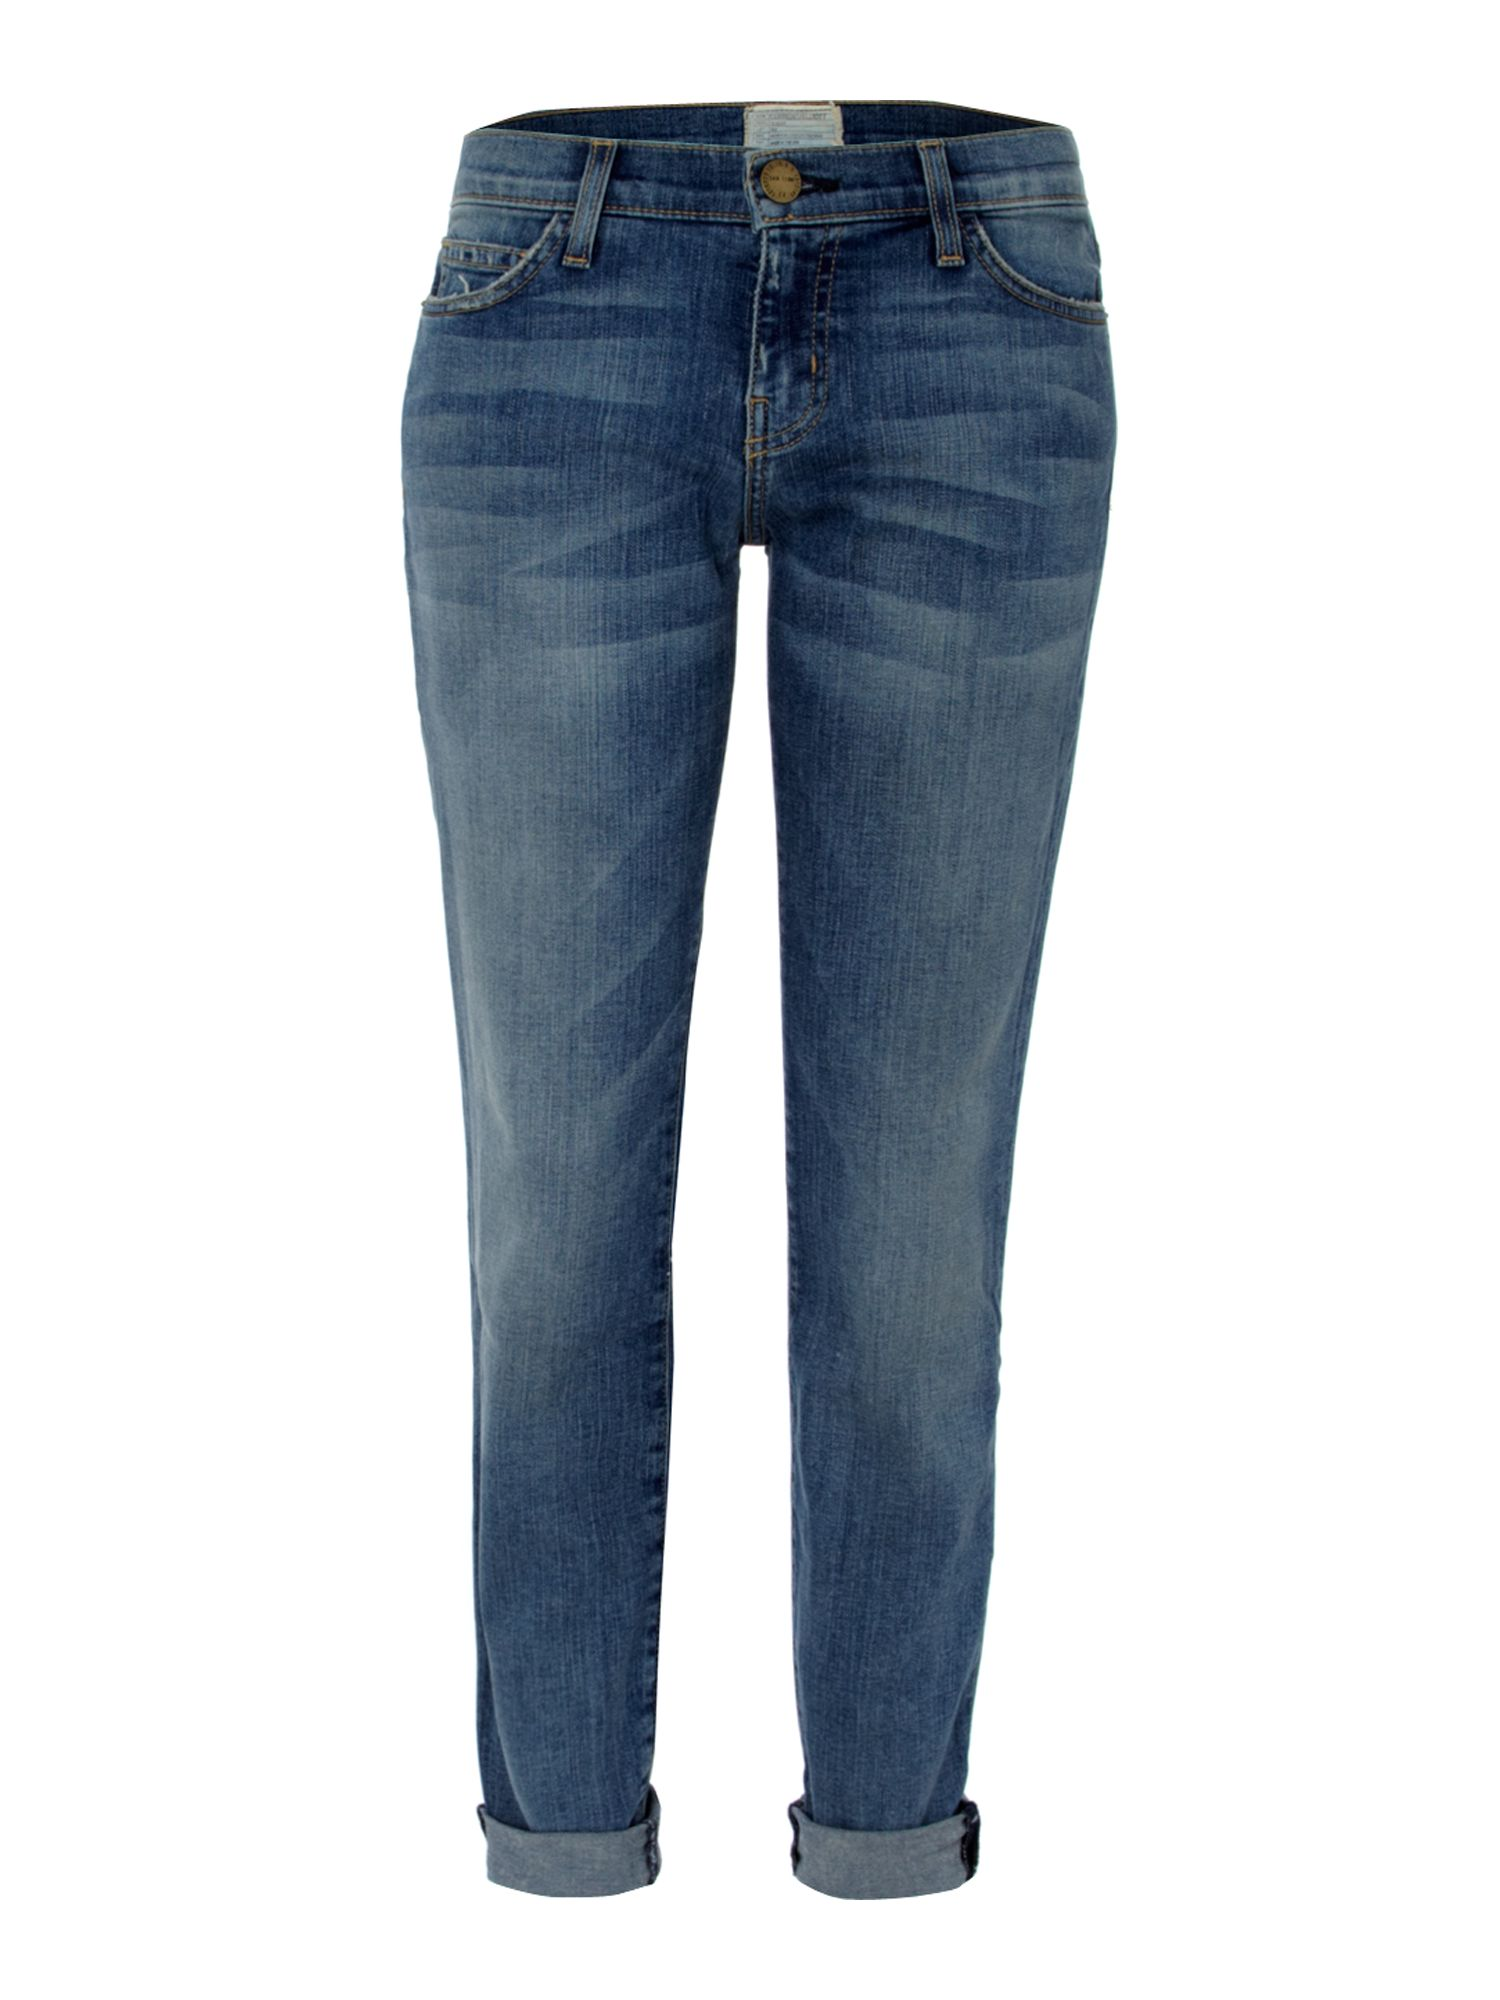 The Rolled Skinny boyfriend jeans in Bleeker